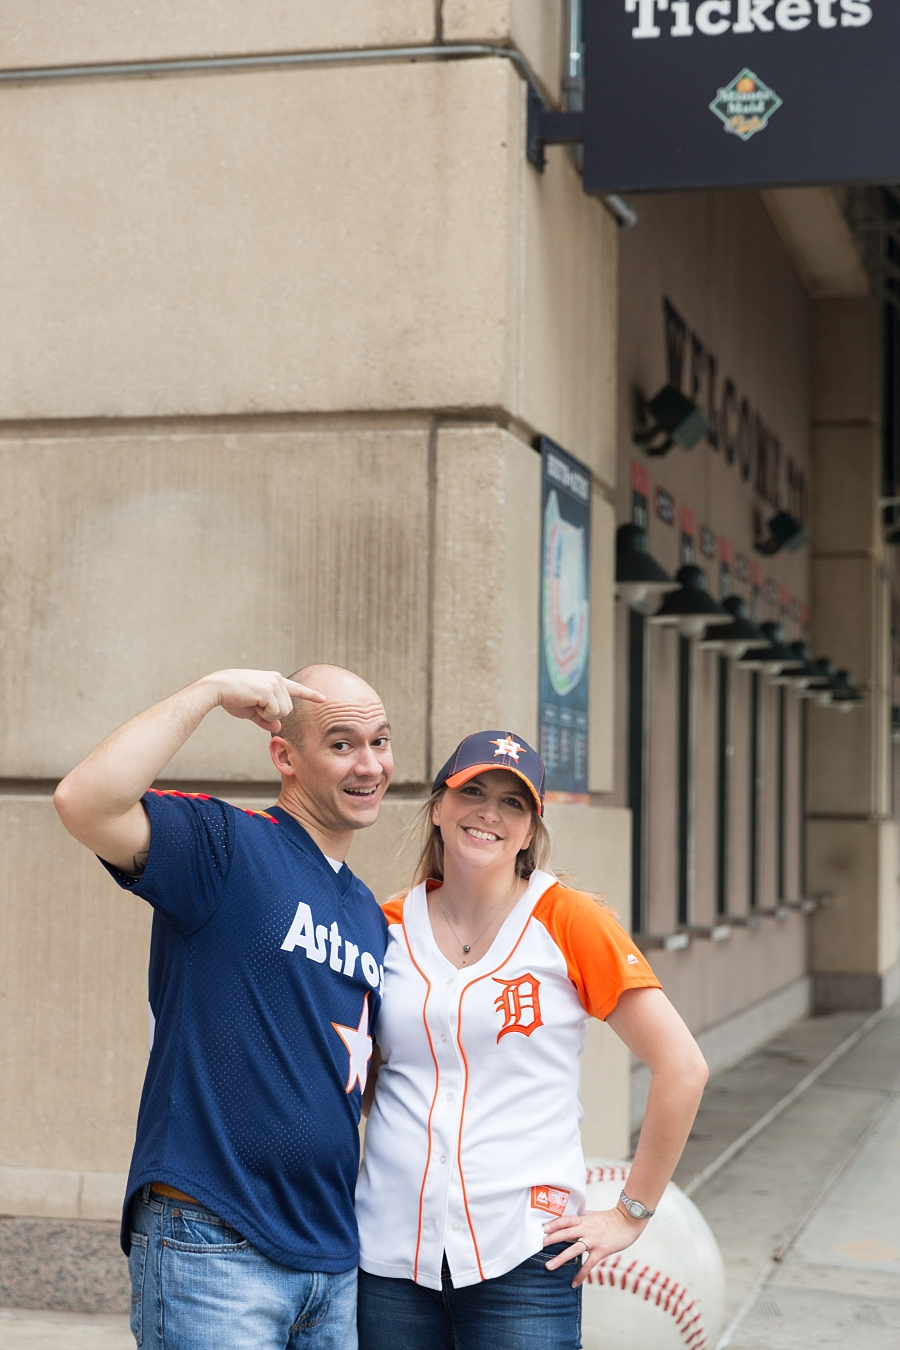 Stacy-Anderson-Photography-Houston-Astros-Baseball-engagement-photo_0036.jpg